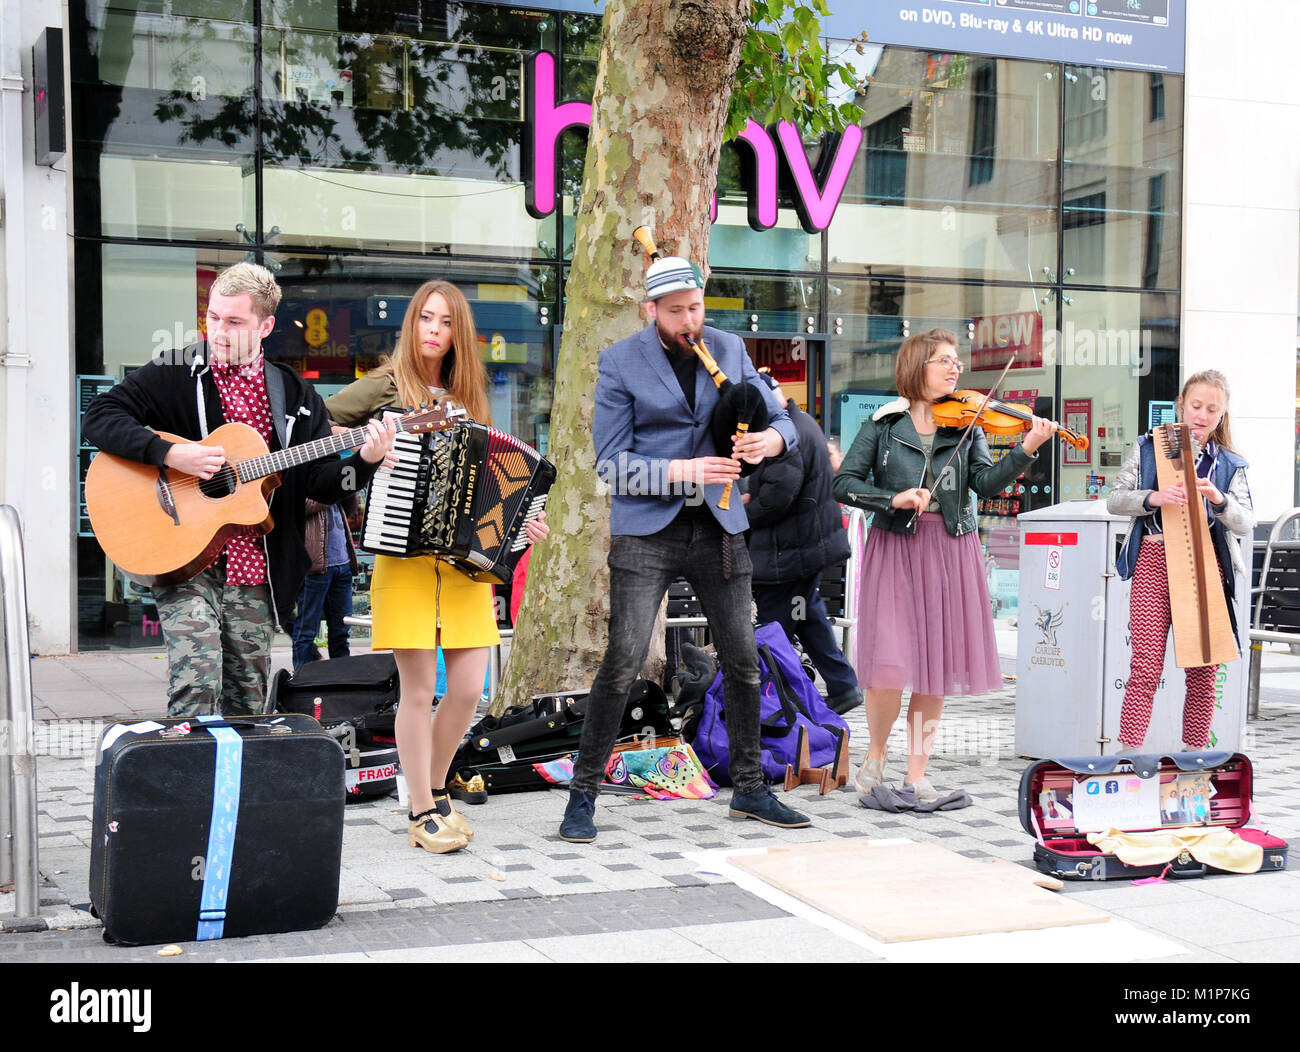 Folk group musicians playing in Cardiff shopping precinct. - Stock Image